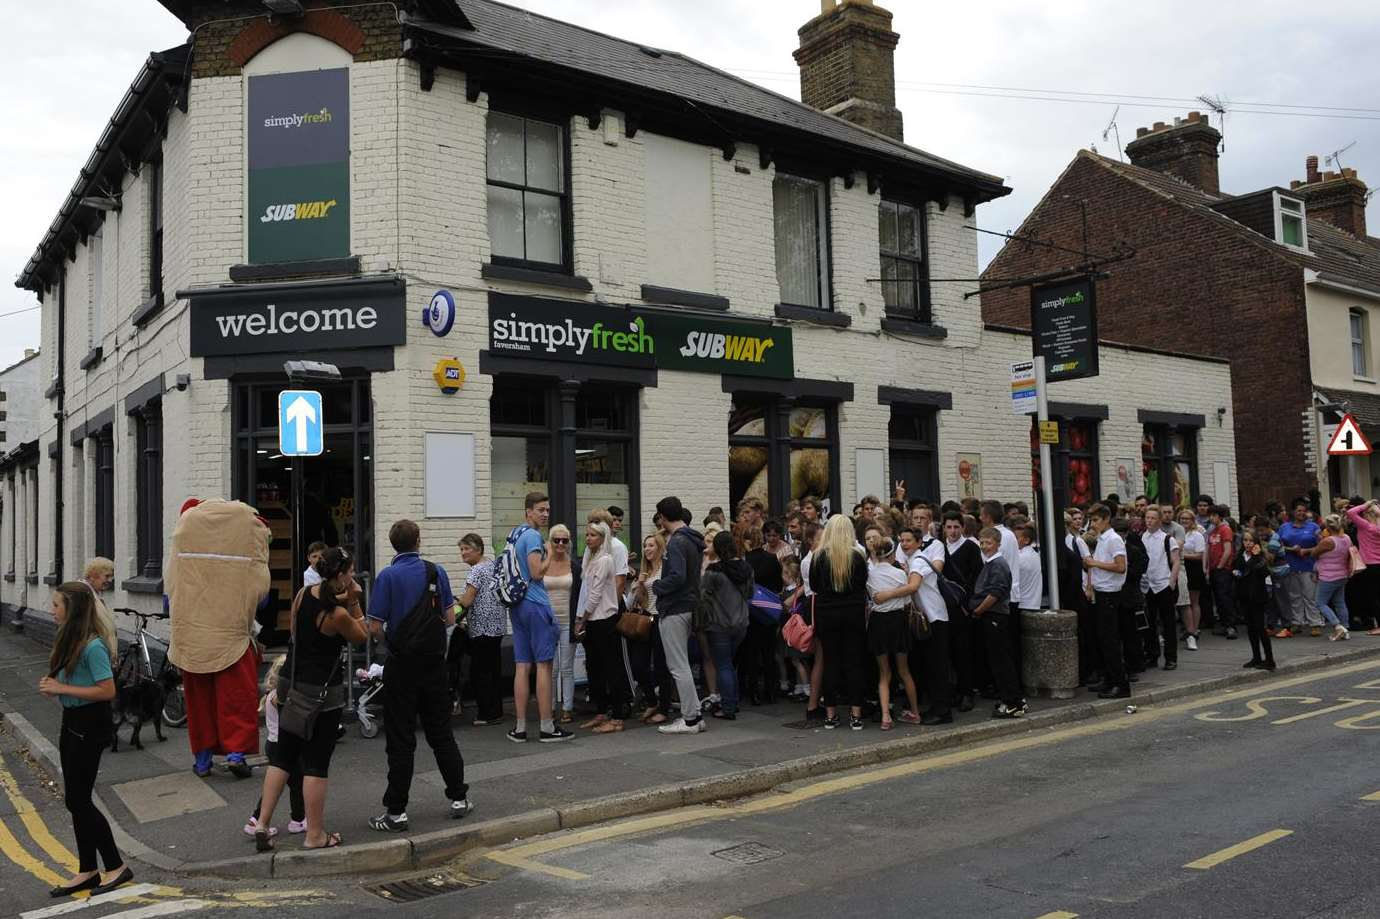 People queue for the new Subway store inside Simply Fresh in Whitstable Road